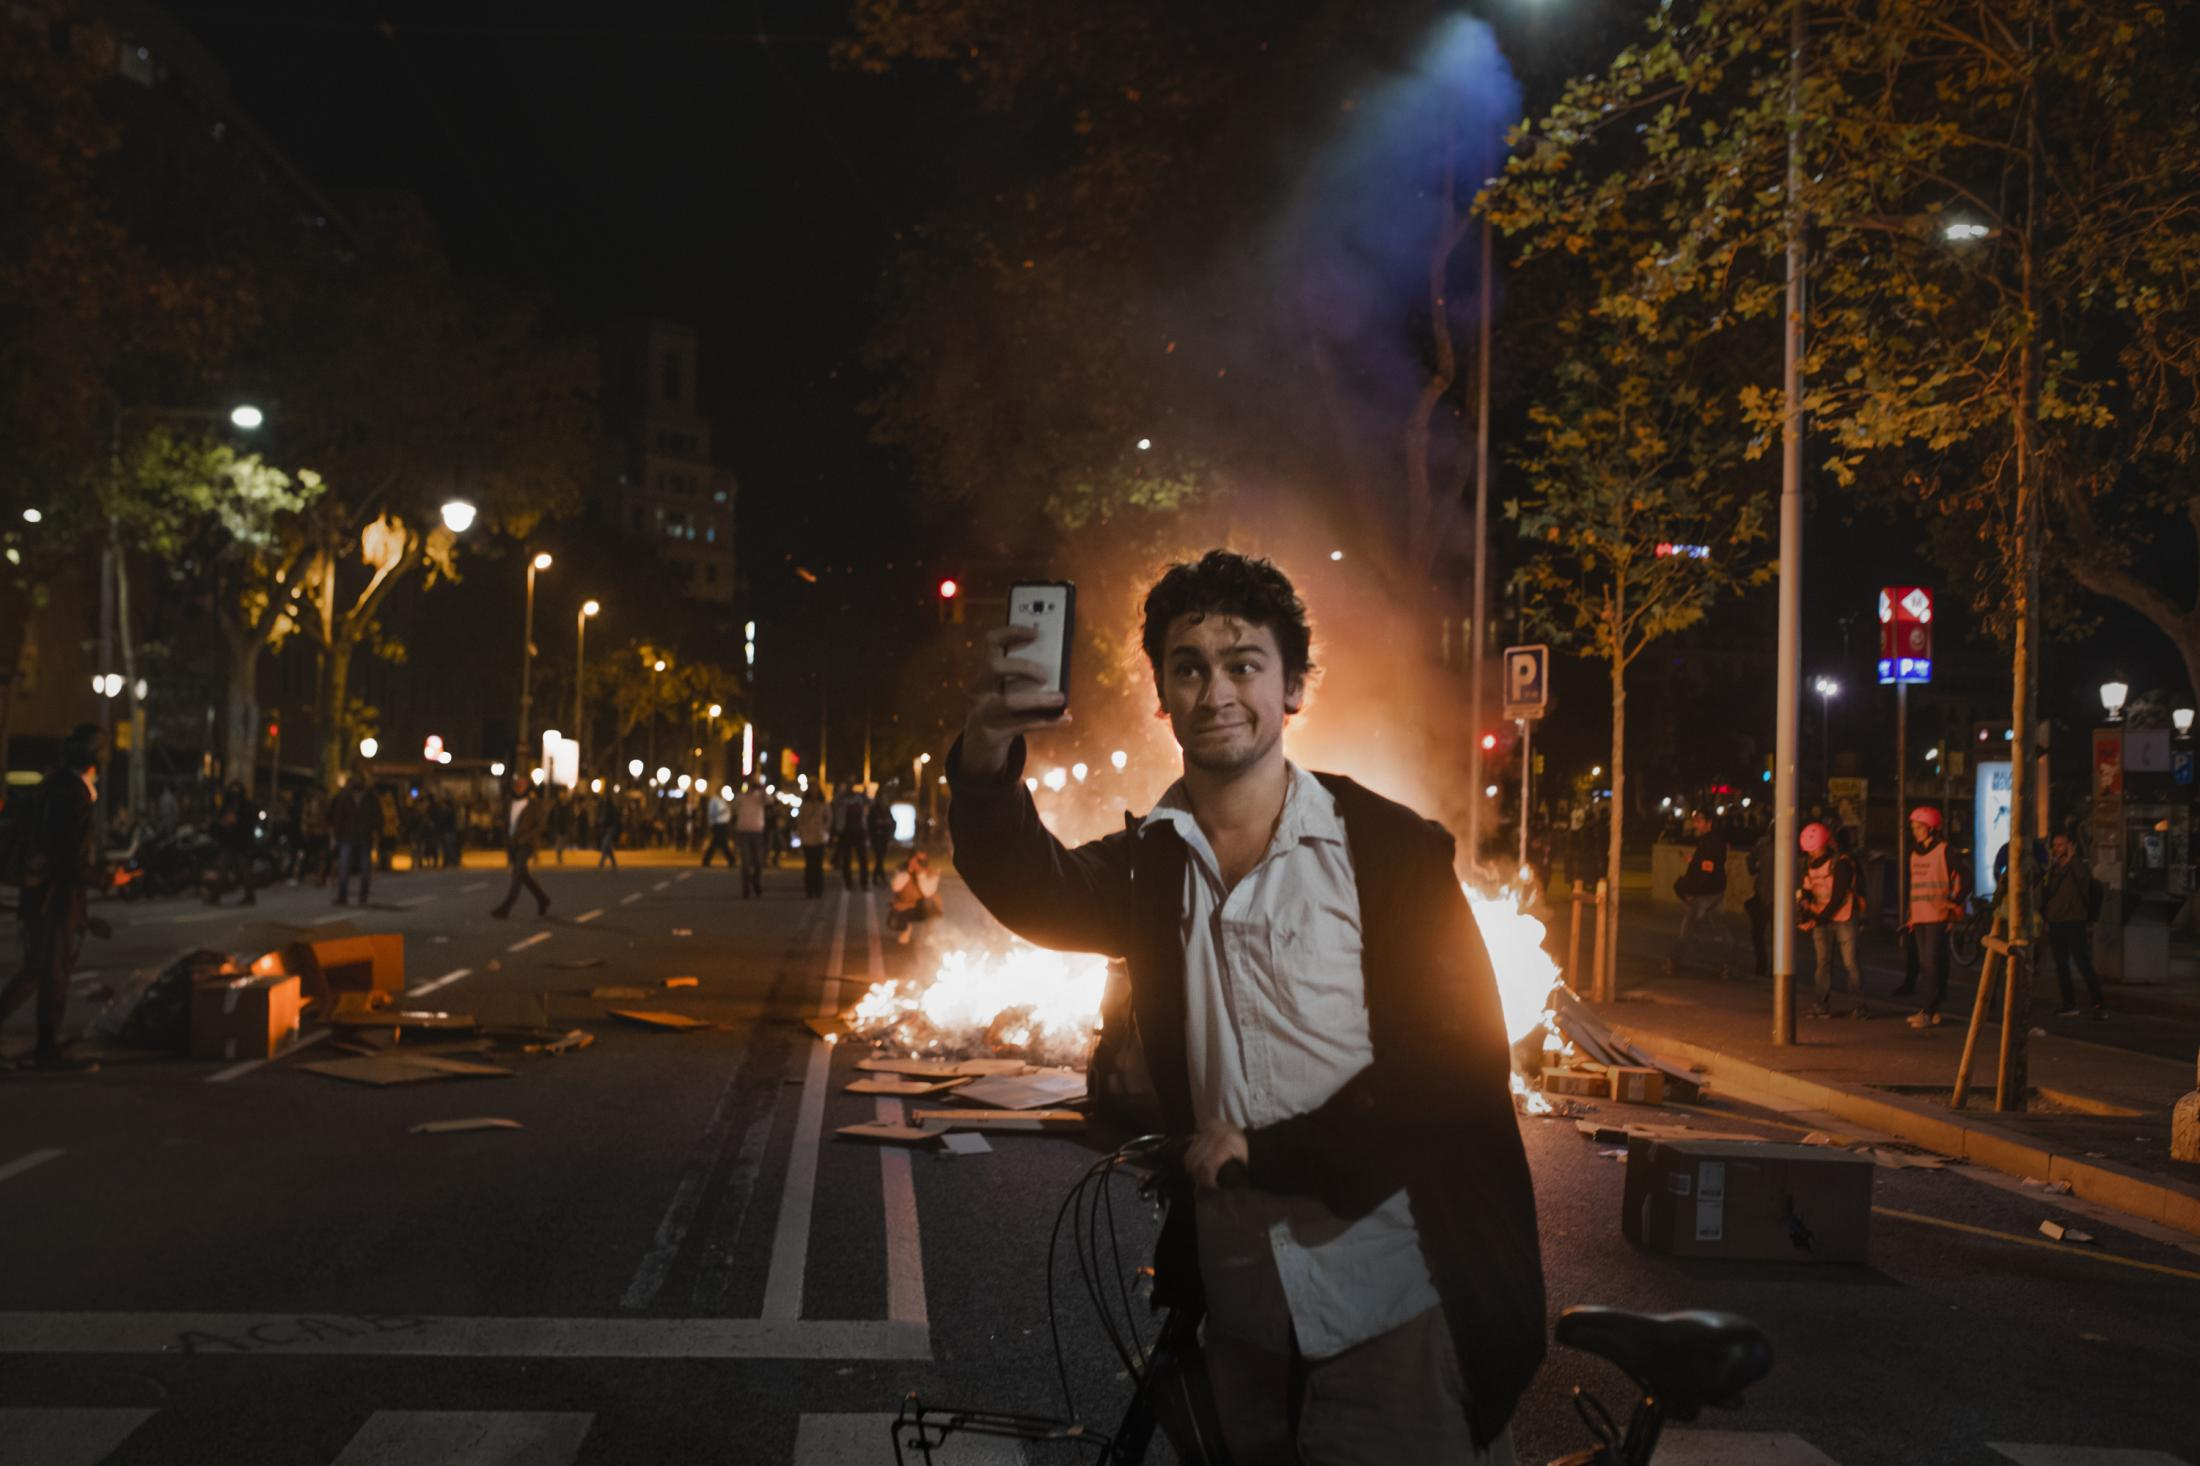 """October 26, 2019. Barcelona, Spain. A young man takes a selfie while the center of Barcelona was tense at various points of Passeig de Gracia, Pau Claris, and Diagonale because of police actions to deal with the burning of some containers and the creation of barricades to contain the police advance. The riots in Barcelona have left significant damages to street furniture. Fomento Ministry has put them at 7 million euros. The images of these concentrations of students have also provoked the teasing of many citizens. Above all, they have been criticized, on many occasions in a comic tone, for the conditions in which they are found in the photos on social networks, especially when the """"spokespersons"""" of Plaza Universidad have posted a video asking families, businesses and individuals who want to help their 'demonstration', to bring them various products; tents, garbage bags and """"cookies and chocolate no, we have enough"""""""